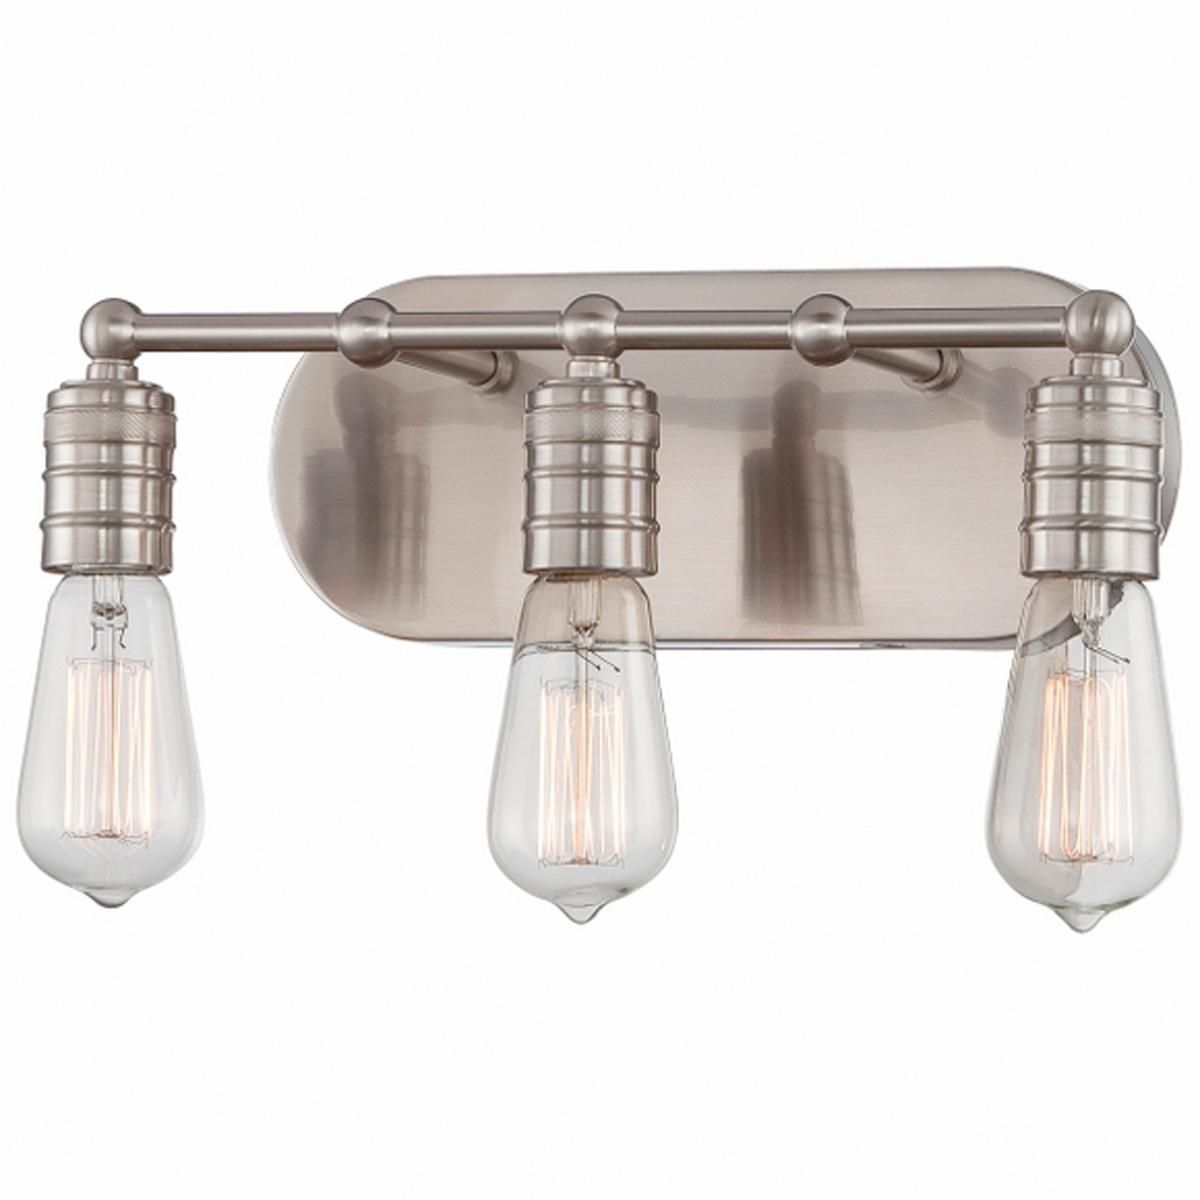 Minimalist Edison 3Light Bath Light  Bath Light Nickel Finish Captivating Industrial Bathroom Light Fixtures Design Ideas